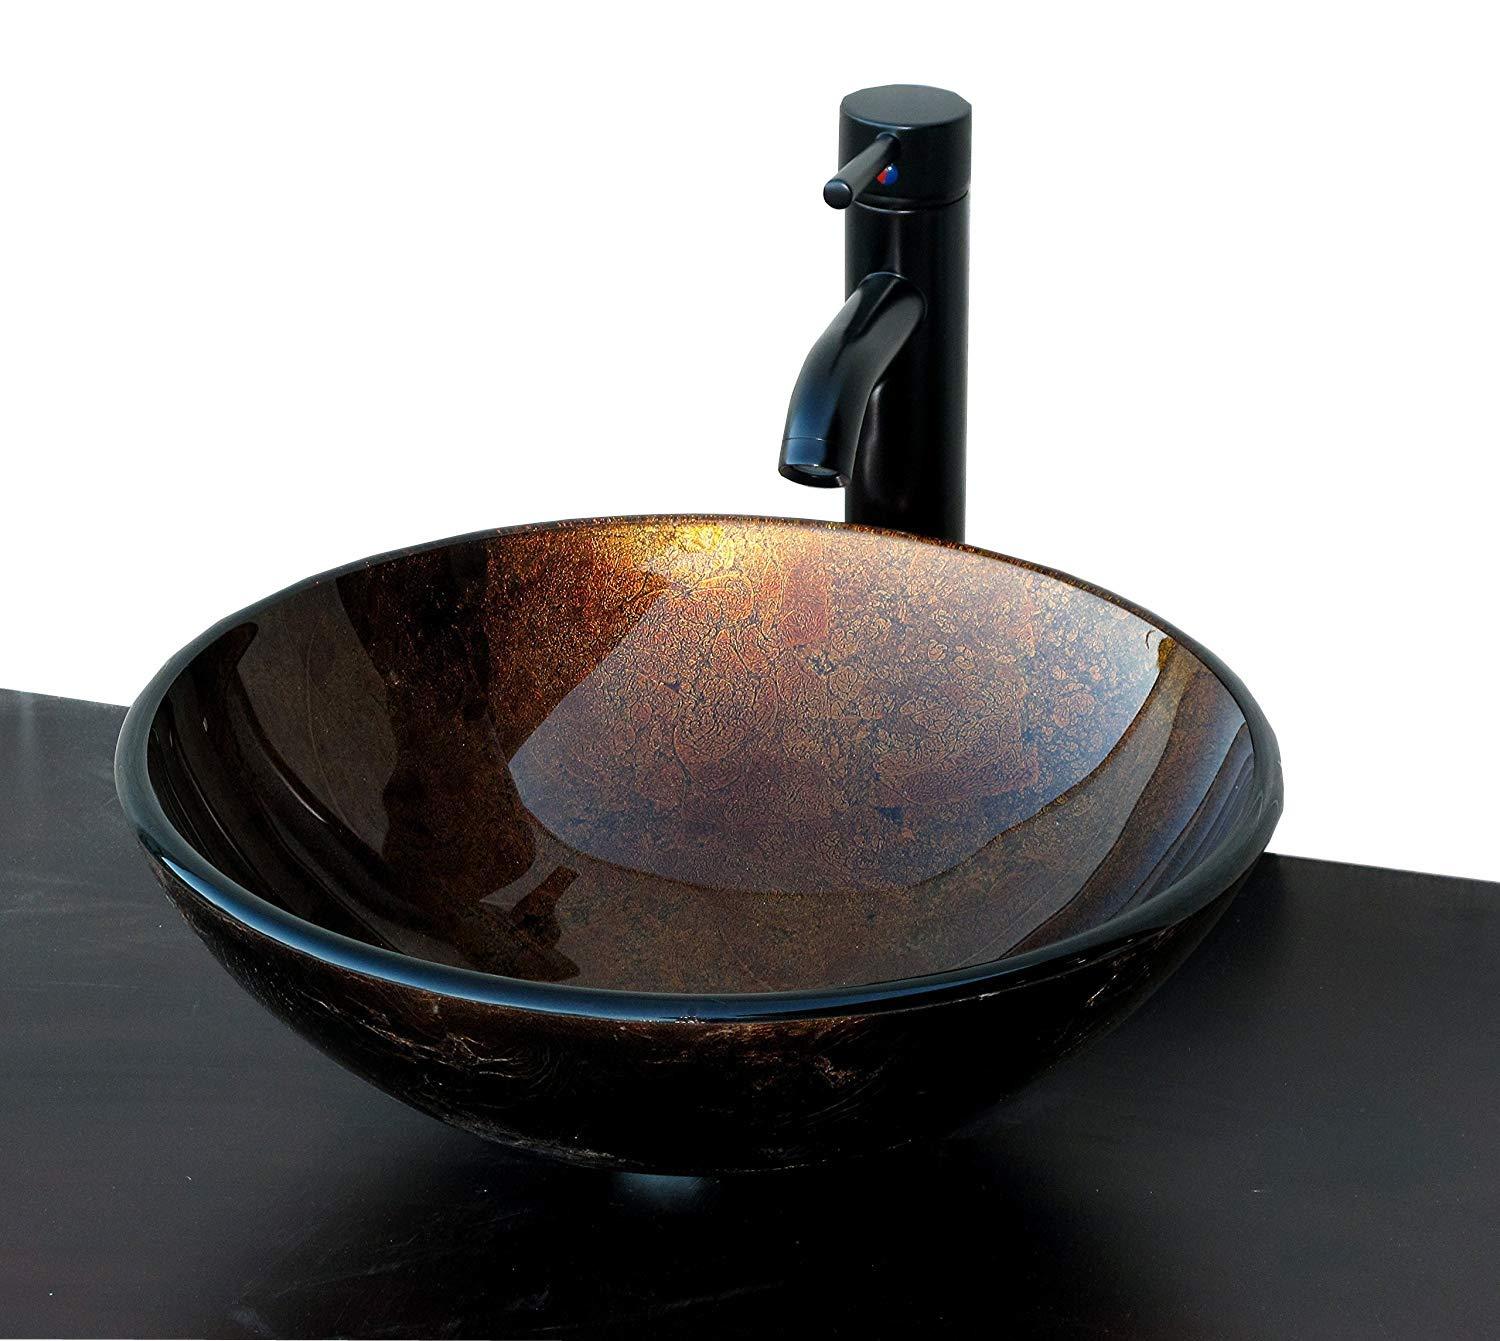 ELIMAX S Ch9052 Artistic Round Combo Glass Vessel Sink with Oil Rubbed Bronze Faucet and op-Up Drain